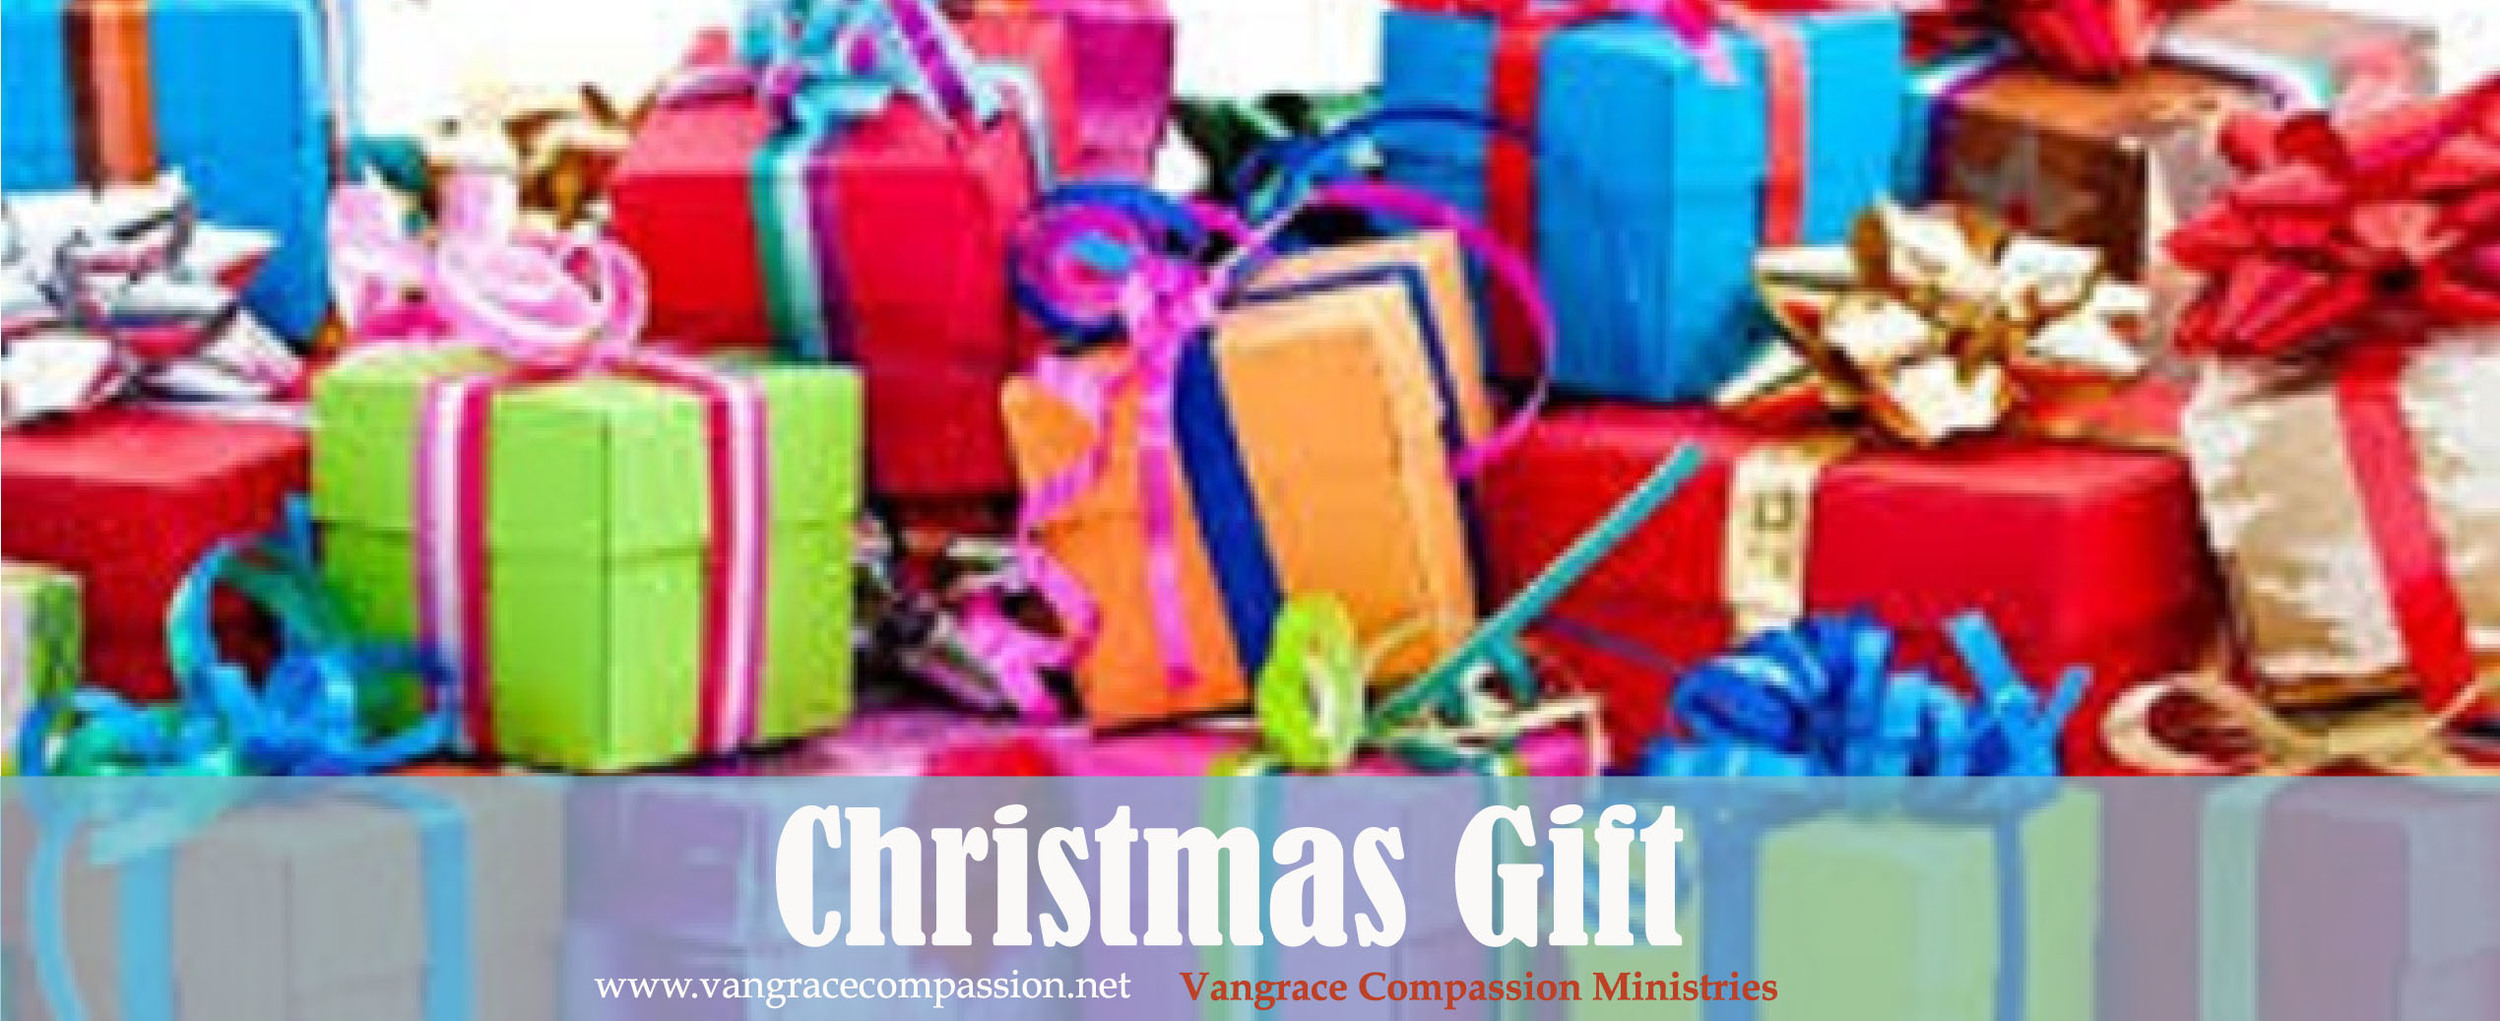 Christmas Gift Catalog. — Vangrace Compassion Ministries